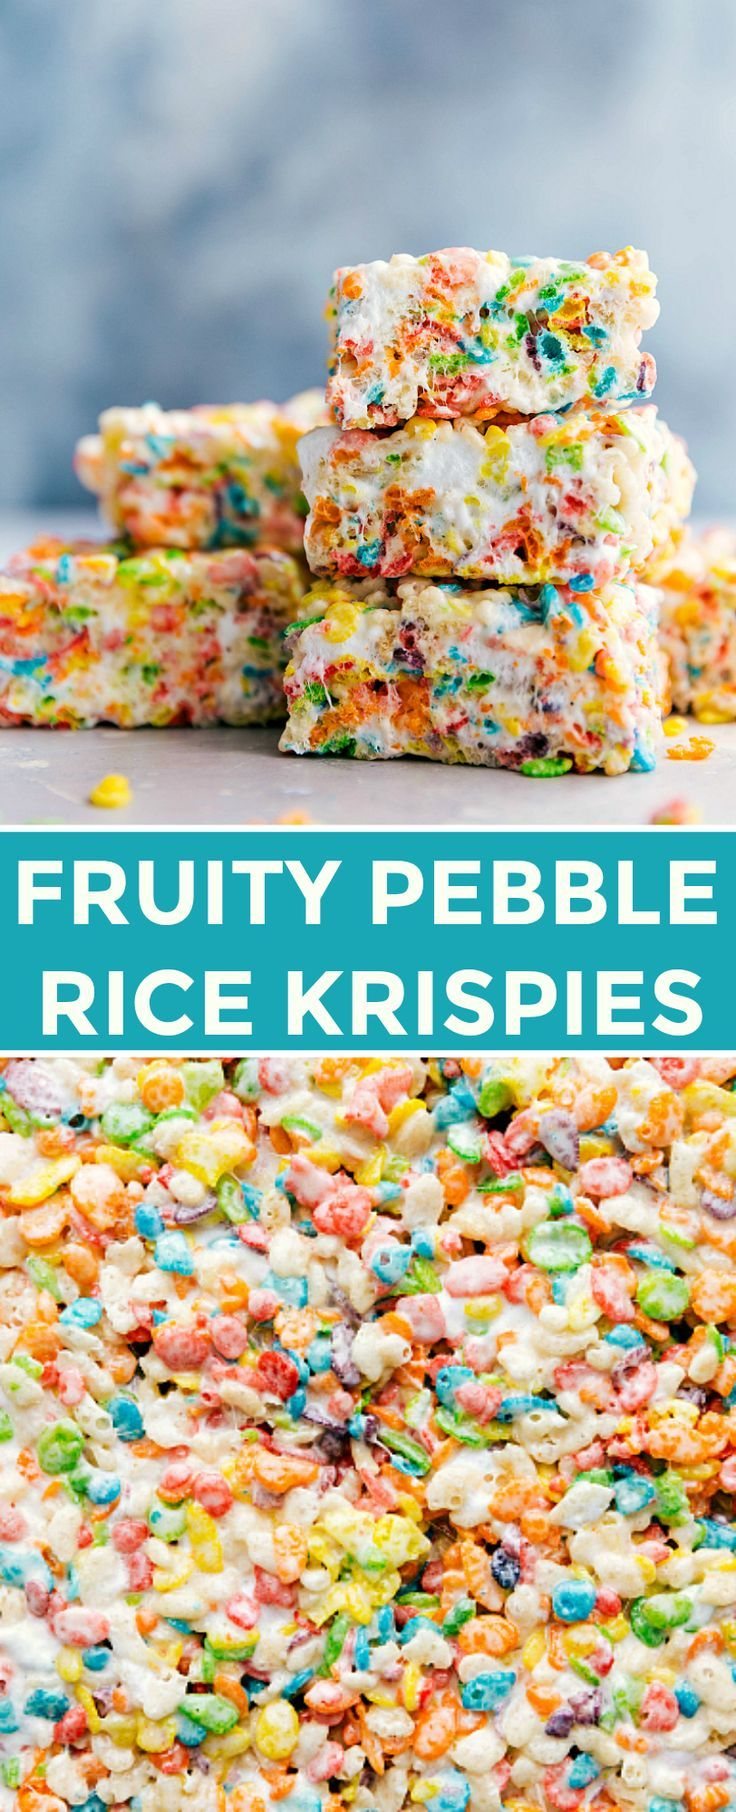 how to make fruity pebbles rice crispy treats without marshmallows